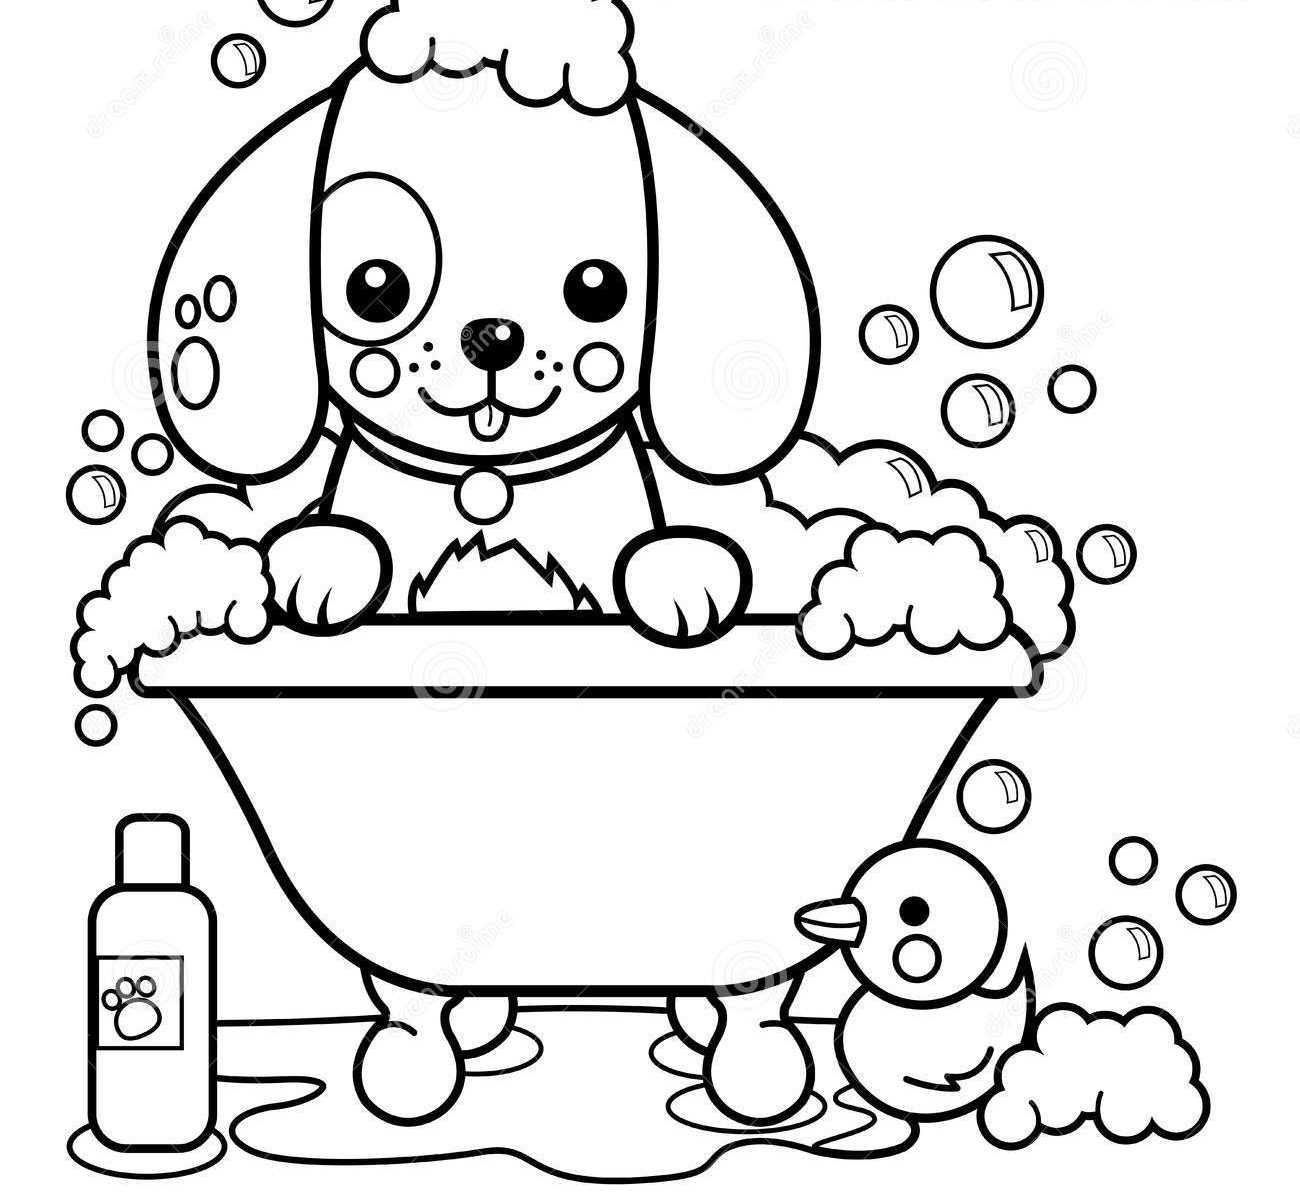 Bathtime Coloring Pages - Coloring Home | 1200x1300